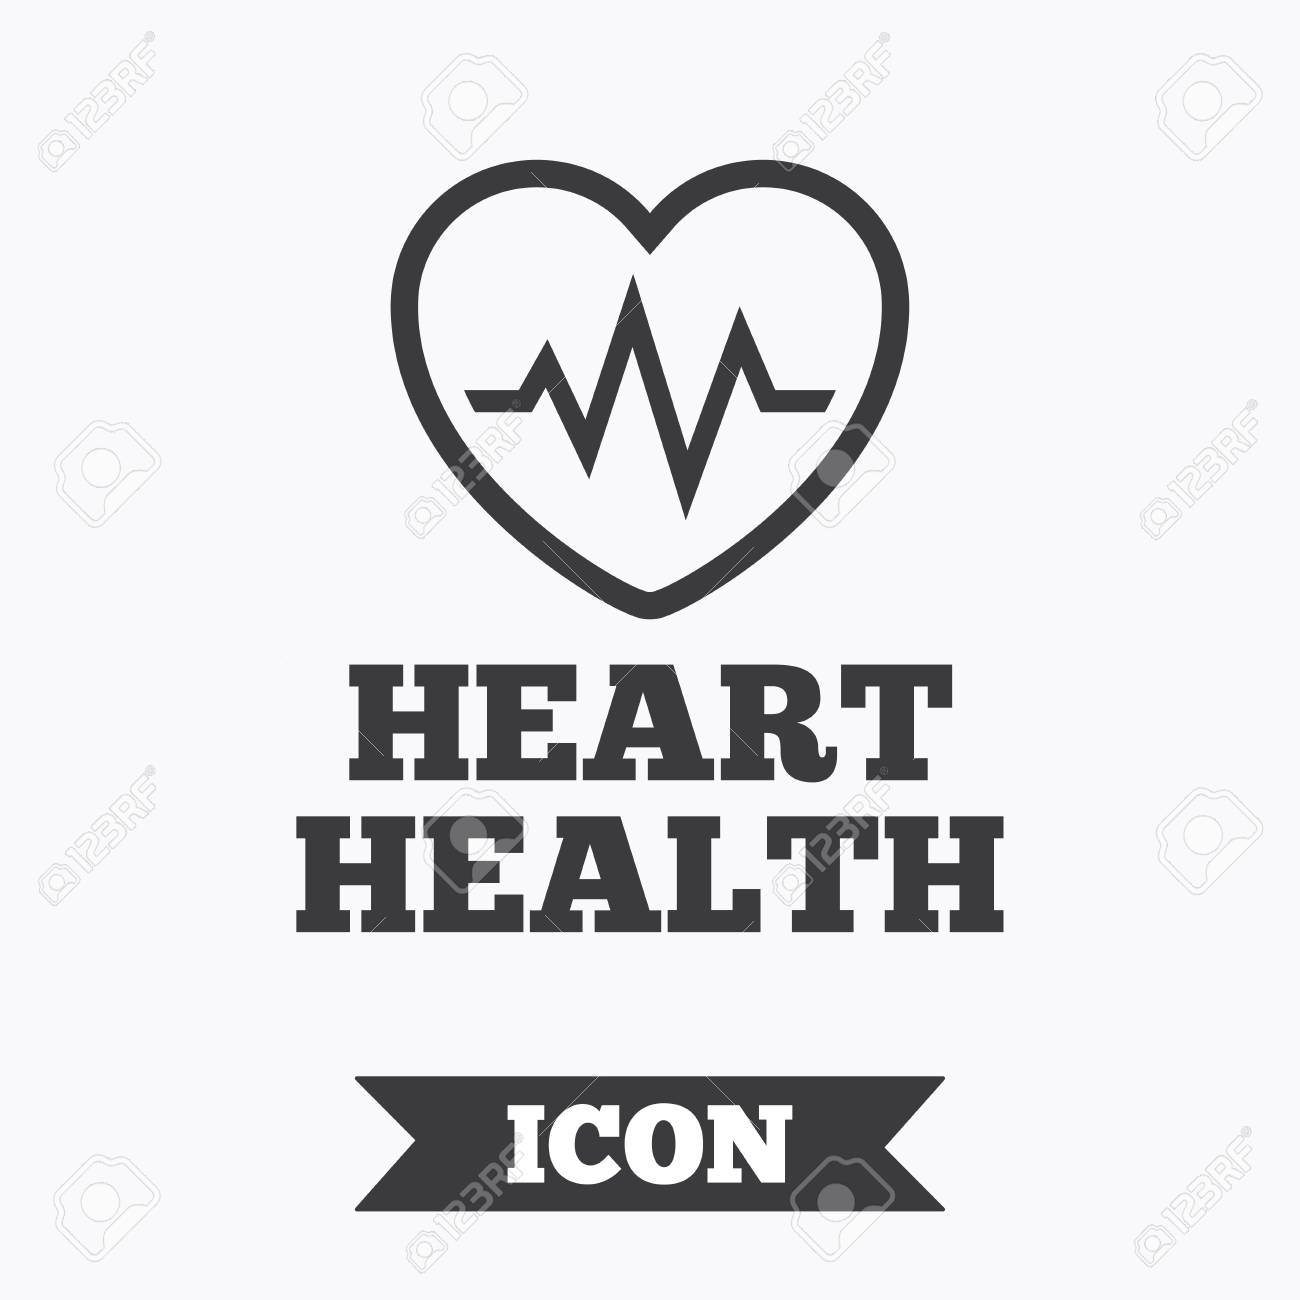 Heartbeat Sign Icon Heart Health Cardiogram Check Symbol Graphic